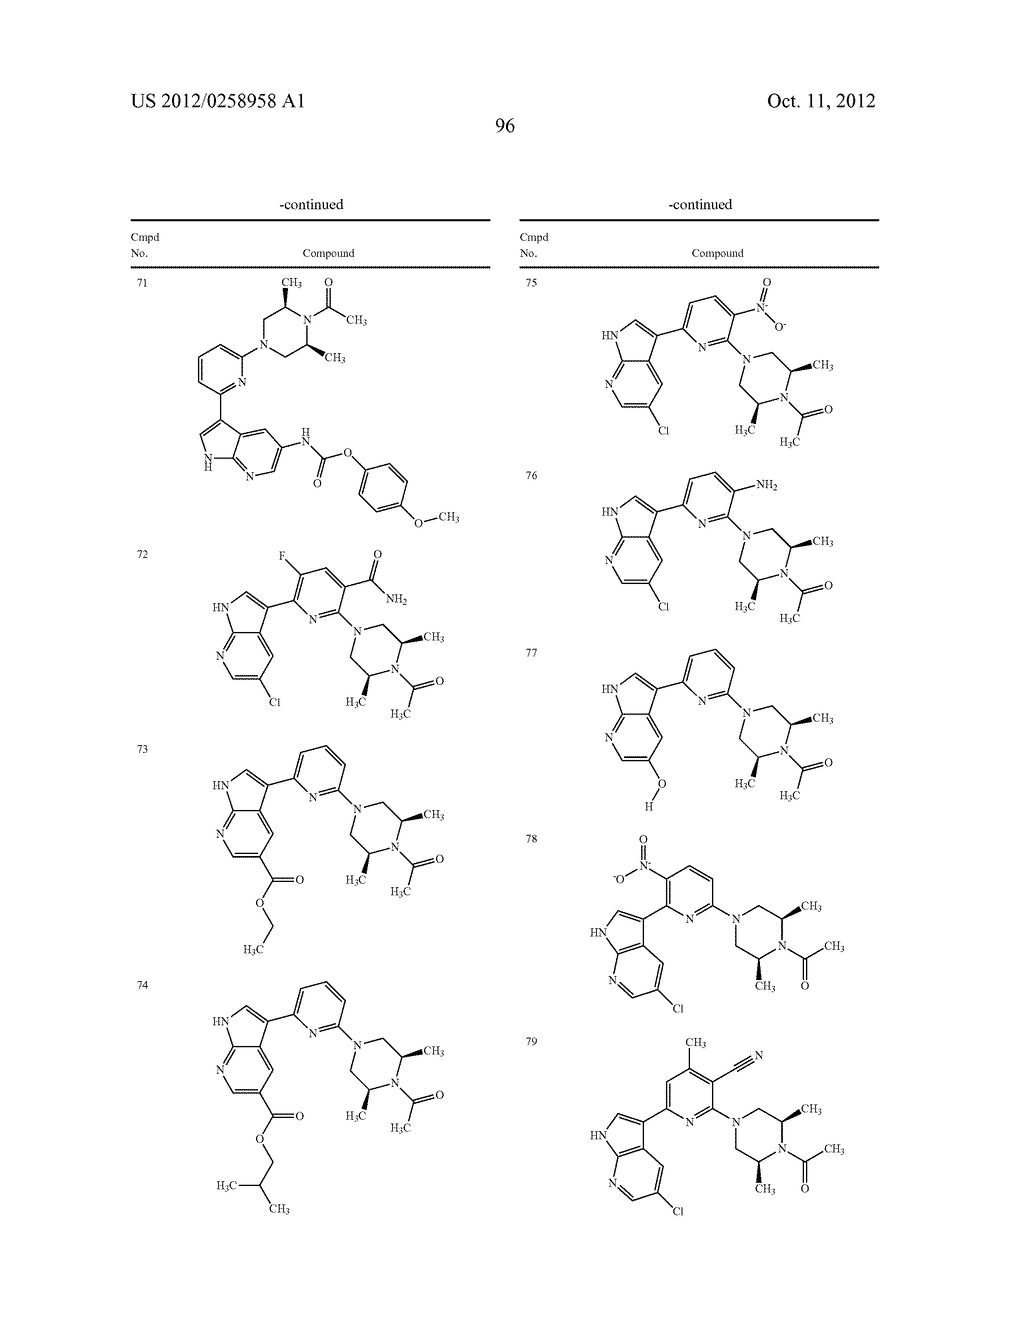 AZAINDOLES USEFUL AS INHIBITORS OF JAK AND OTHER PROTEIN KINASES - diagram, schematic, and image 97